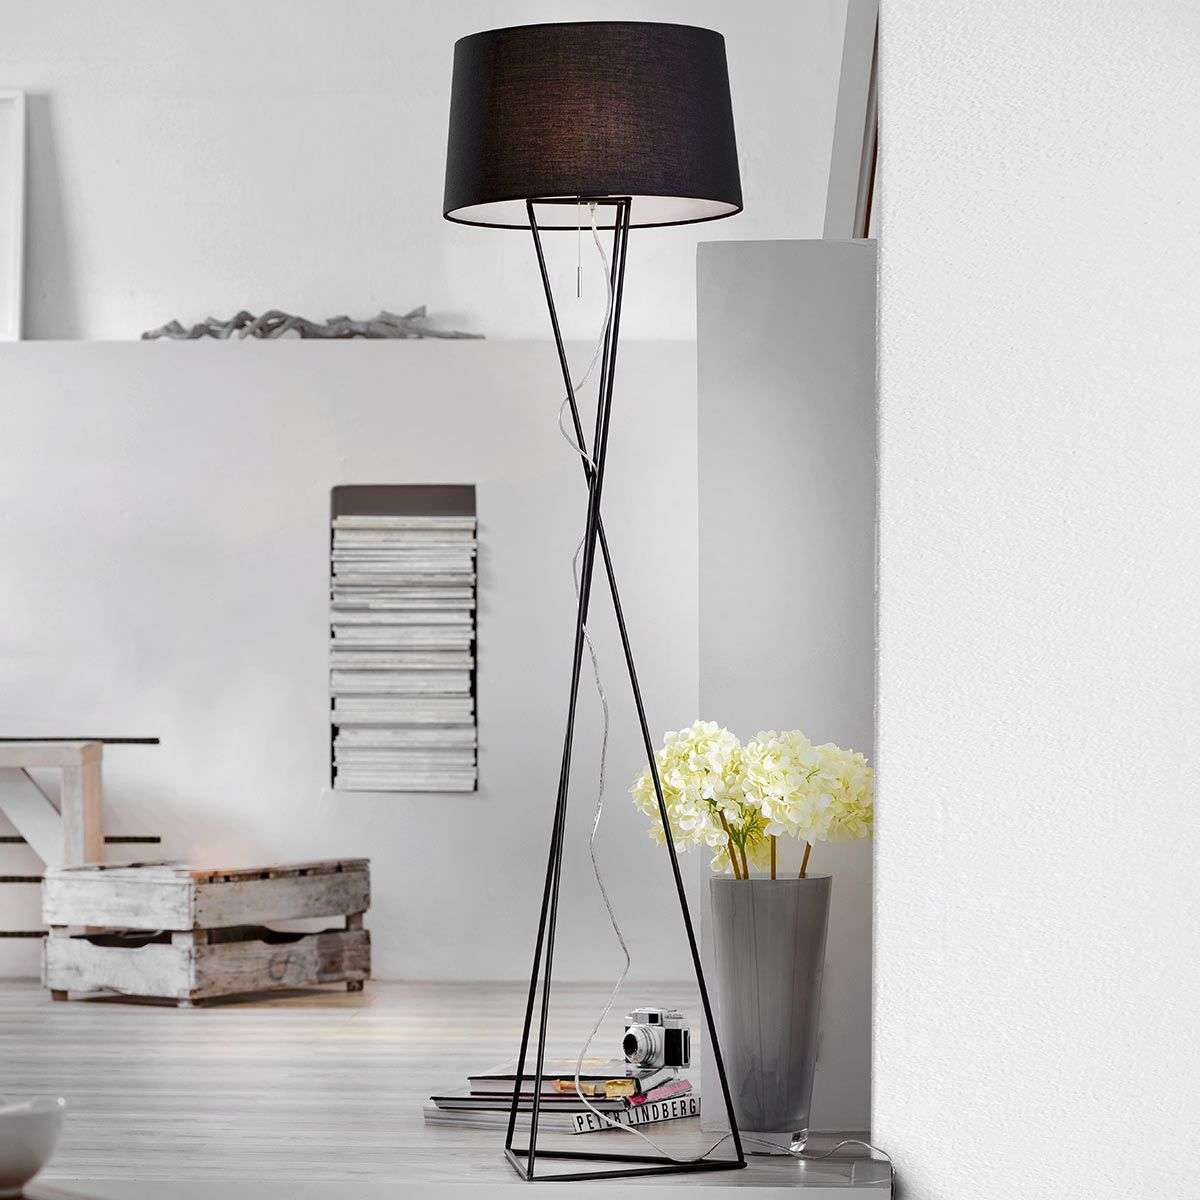 New York unusual fabric floor lamp | Lights.ie